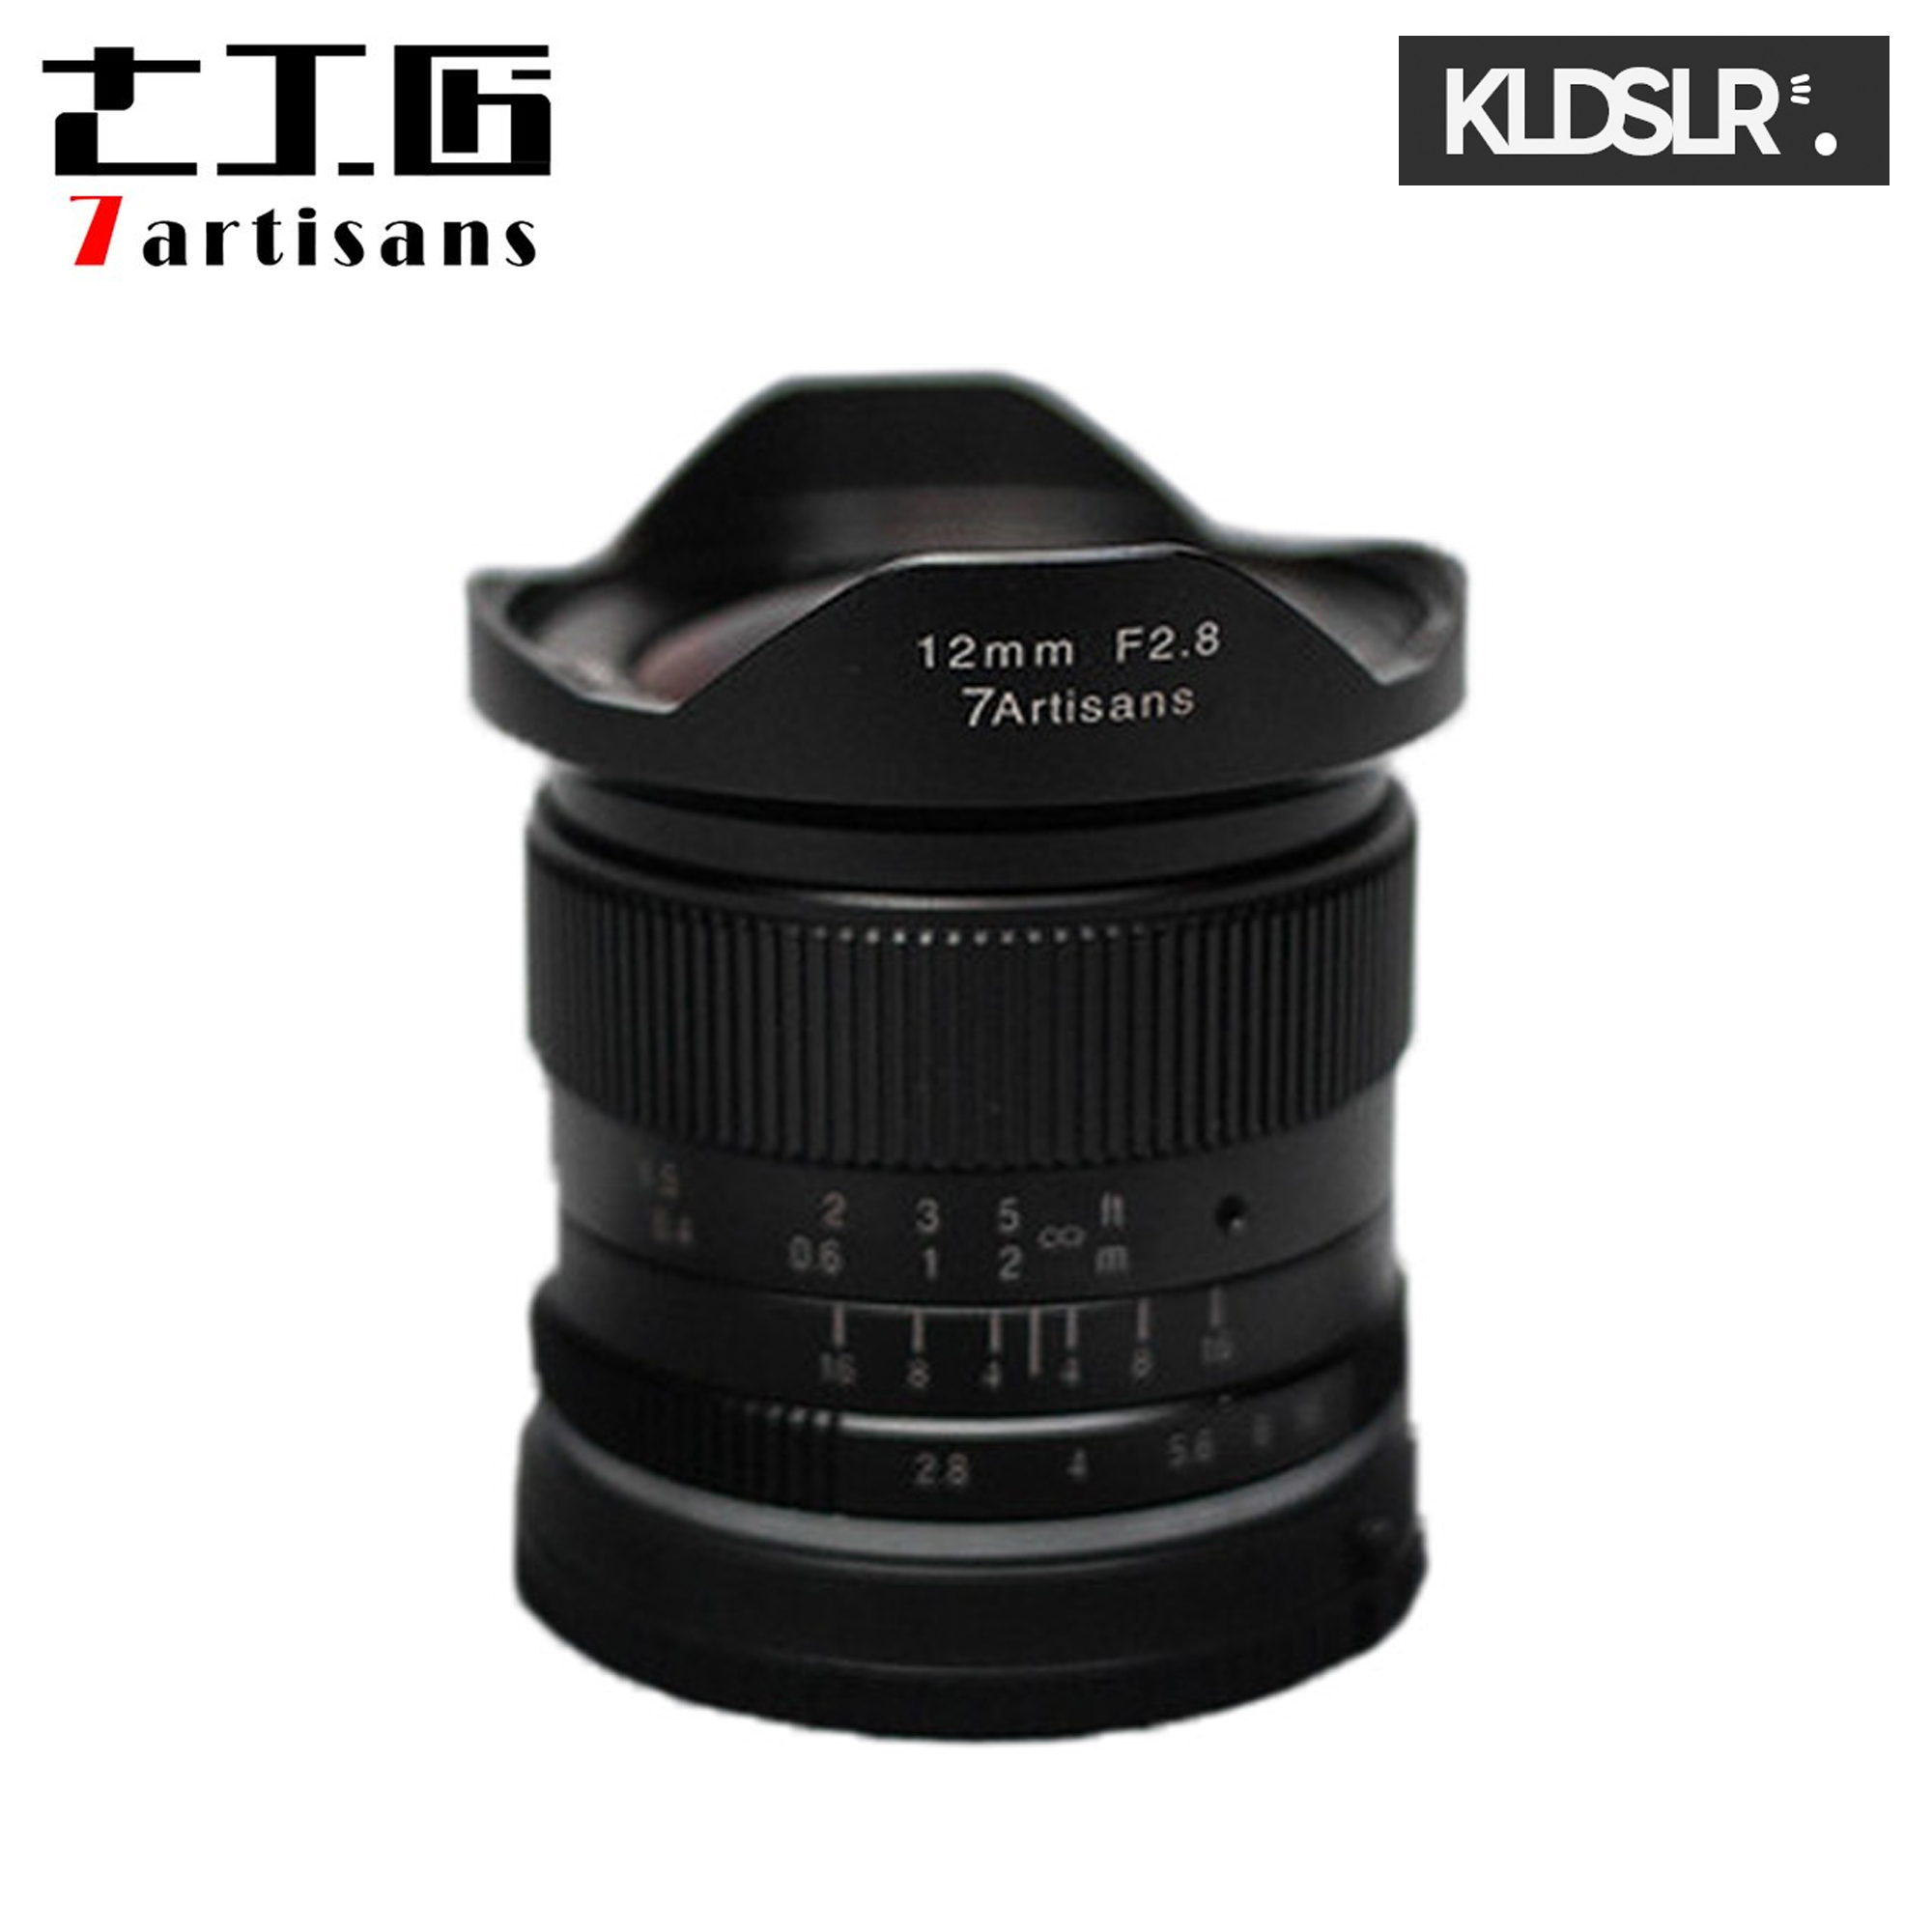 (Clearance) 7artisans Photoelectric 12mm f2.8 Lens for Sony E-Mount Cameras